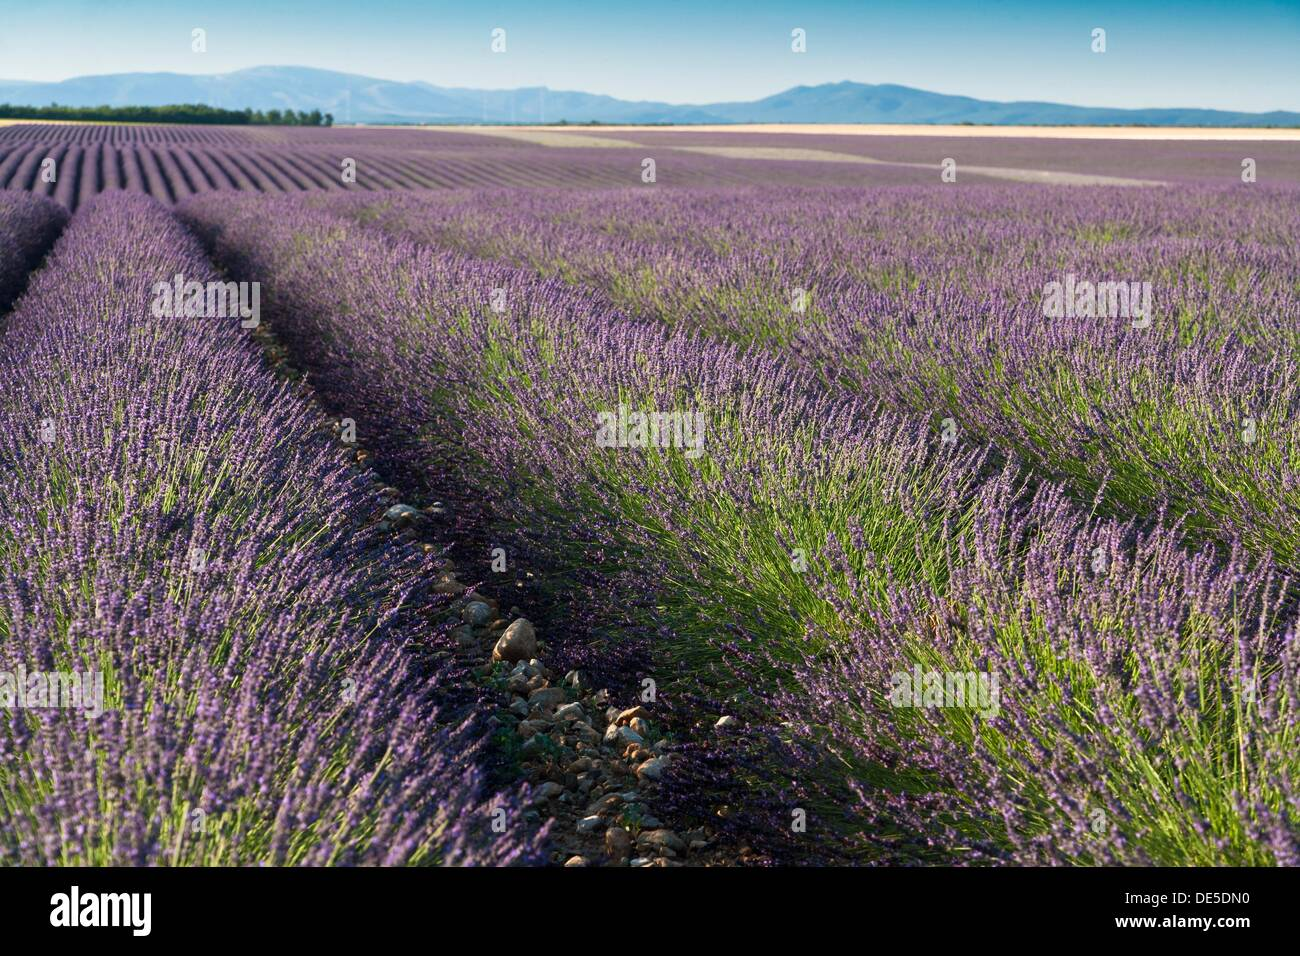 Rows of lavender on the Plateau de Valensole in Provence, France, Europe - Stock Image